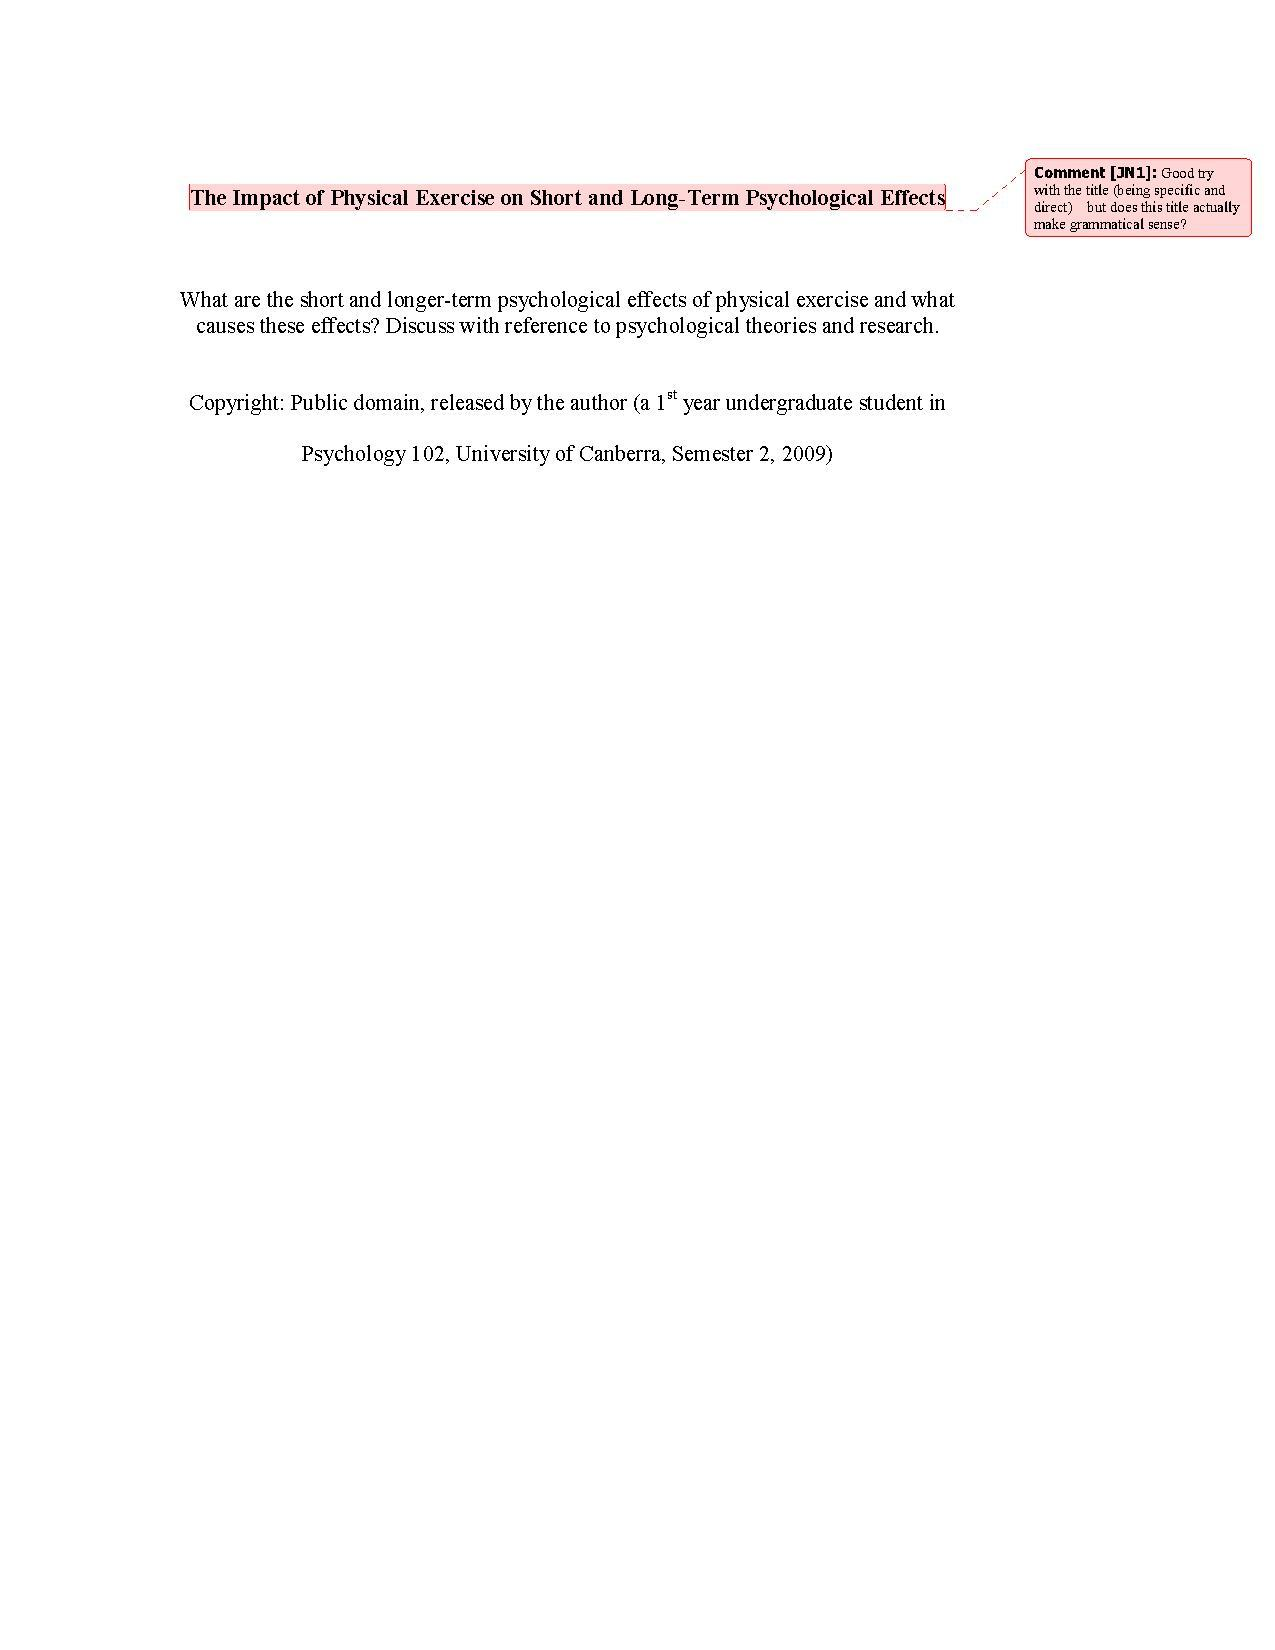 phd thesis proposal example pdf